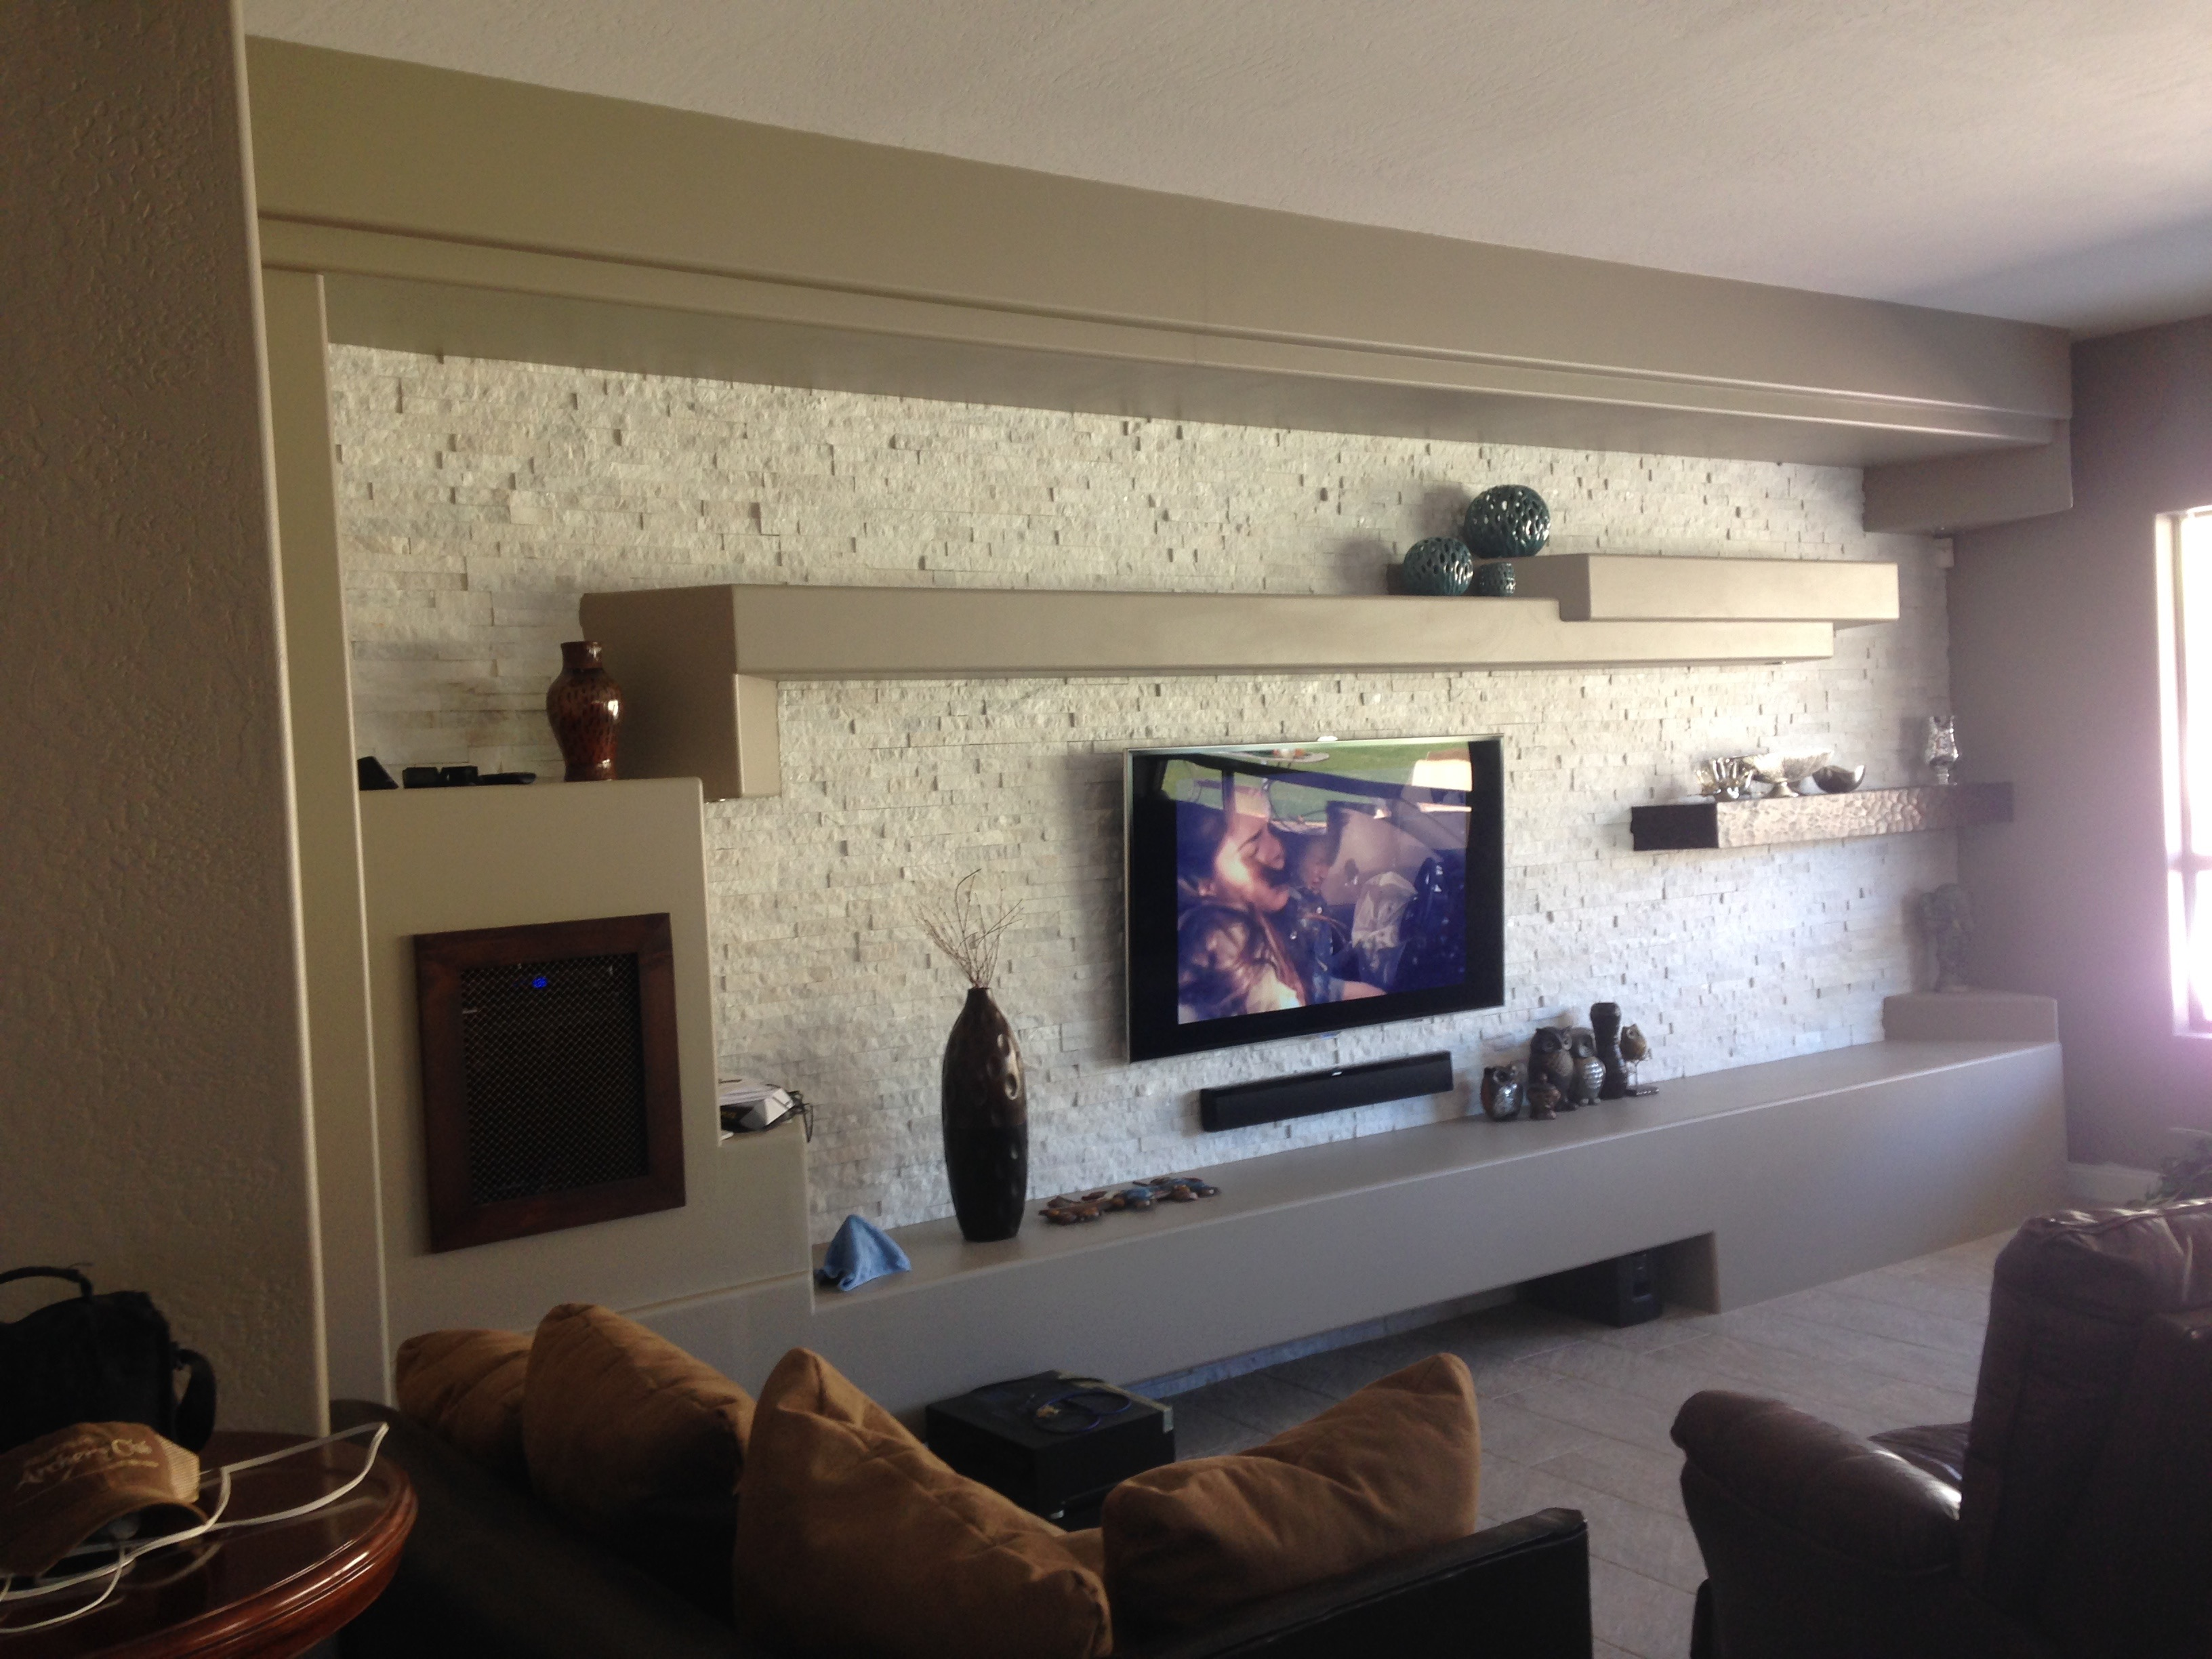 Living room wall, faux drywall, MDF painted wall, daggr design, fake drywall look with cabinetry, demo plastered wall, demo drywall entertainment center,